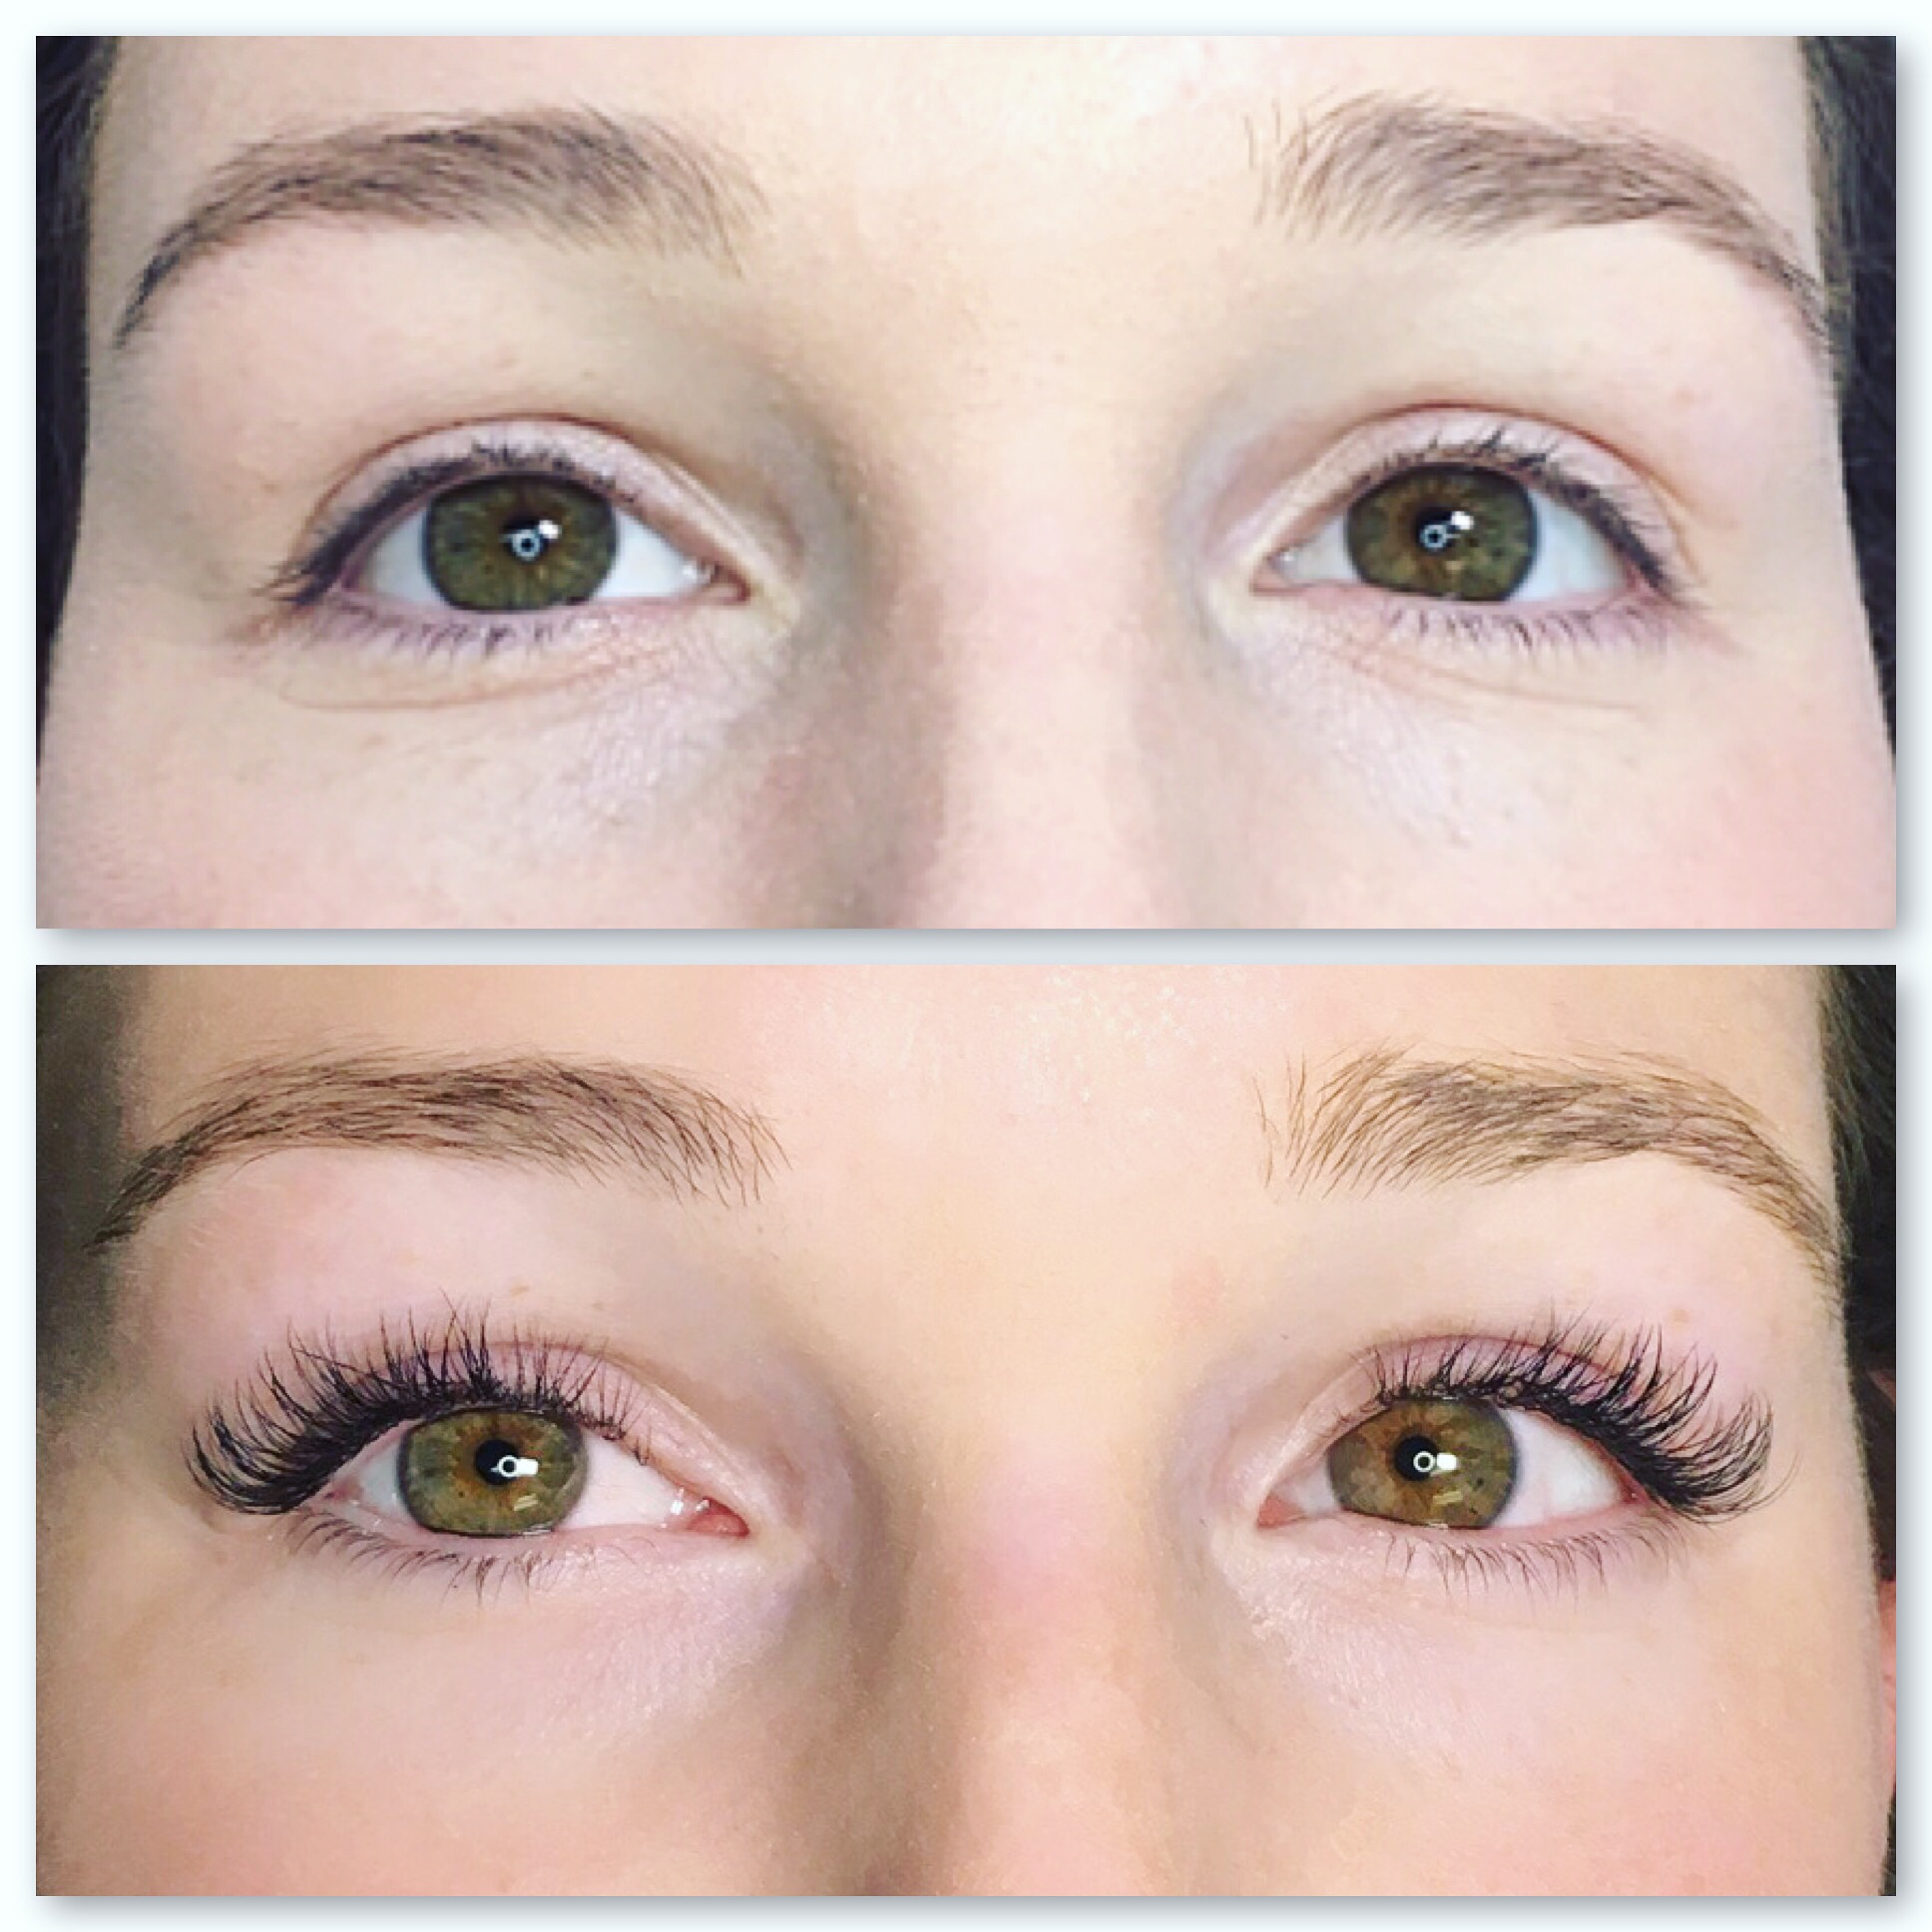 1eabd9be8da The Signature set is a hybrid blend of Volume and Classic lash extensions.  It is the top choice for those new to wearing eyelash extensions, who may  not be ...